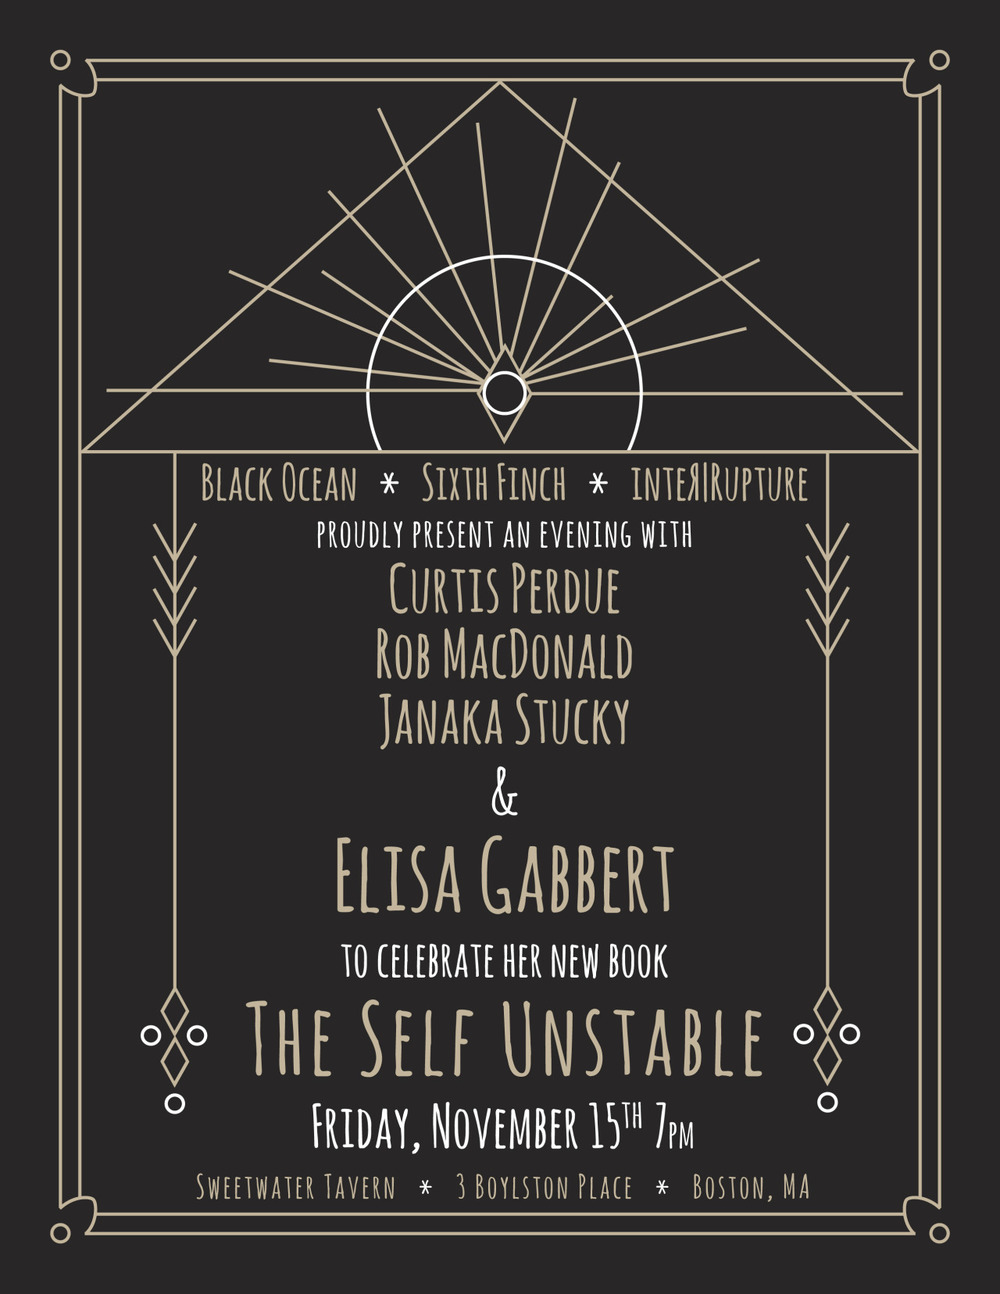 I'll be reading with fellow local indie-literati Curtis Perdue ( inter|rupture ) and Rob MacDonald ( Sixth Finch ) in support of Elisa Gabbert's new book of lyric essays,  The Self Unstable , out from Black Ocean this month!